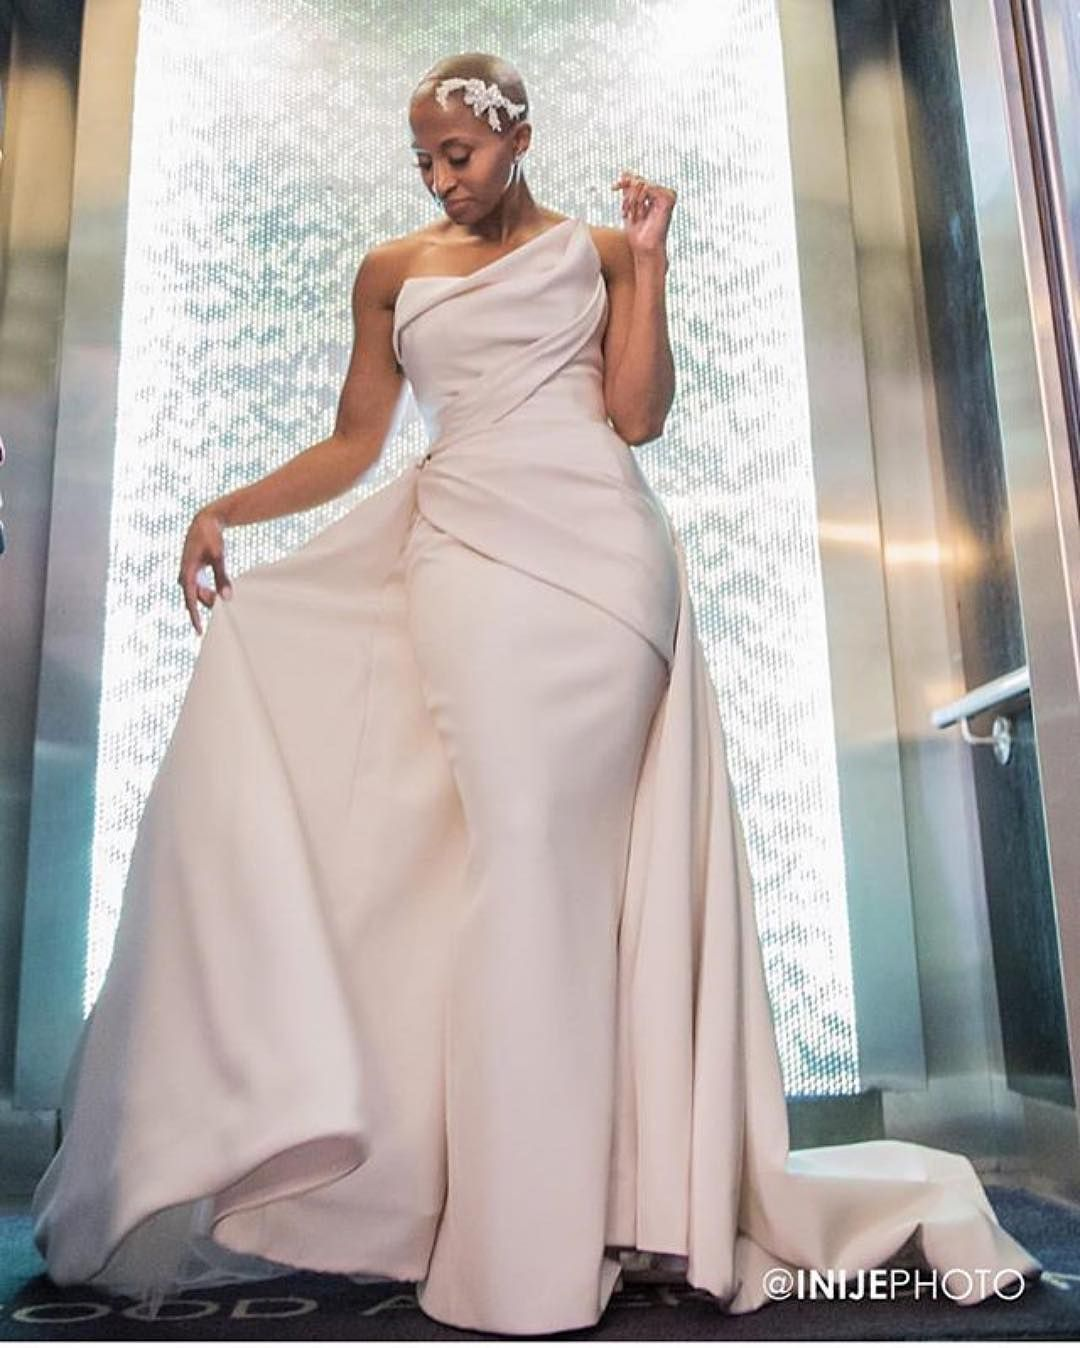 African wedding dresses for guests  Perfect fit naturalhairbride munaluchibride Repost awbeach This